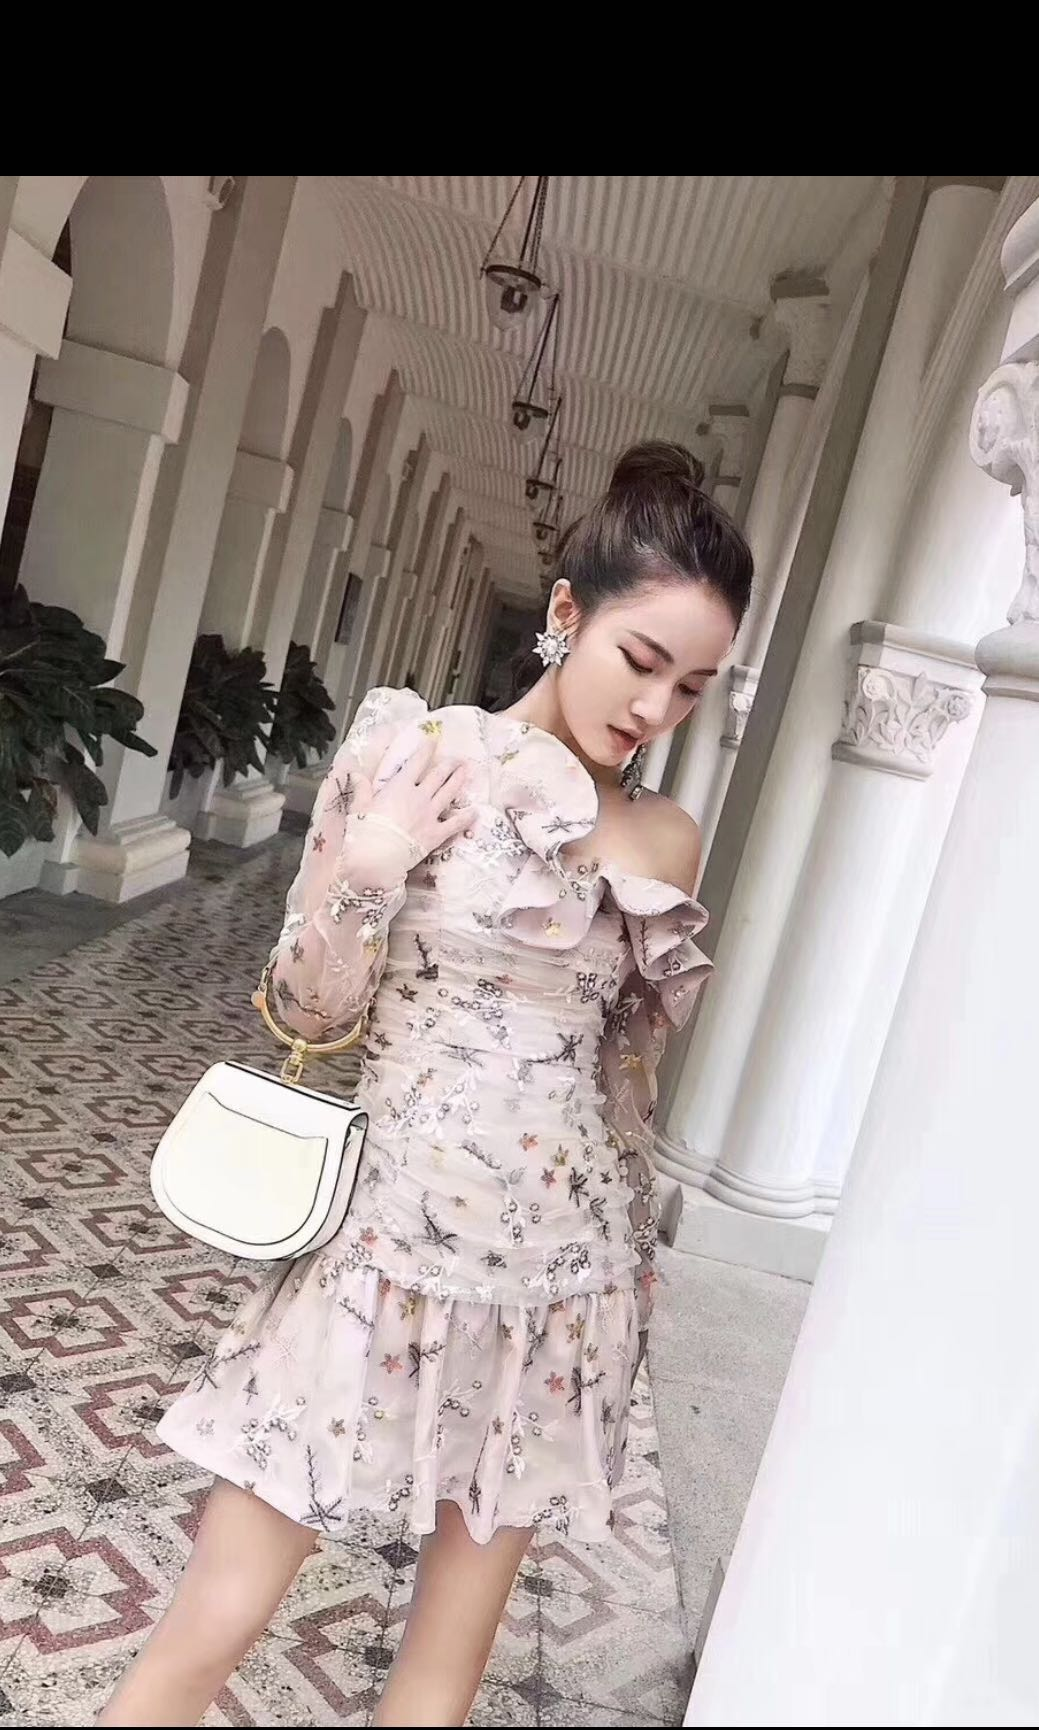 2fcb3cd1c55e BNWT Authentic Self Portrait Almond Star Embroidered Dress, Women's  Fashion, Clothes, Dresses & Skirts on Carousell